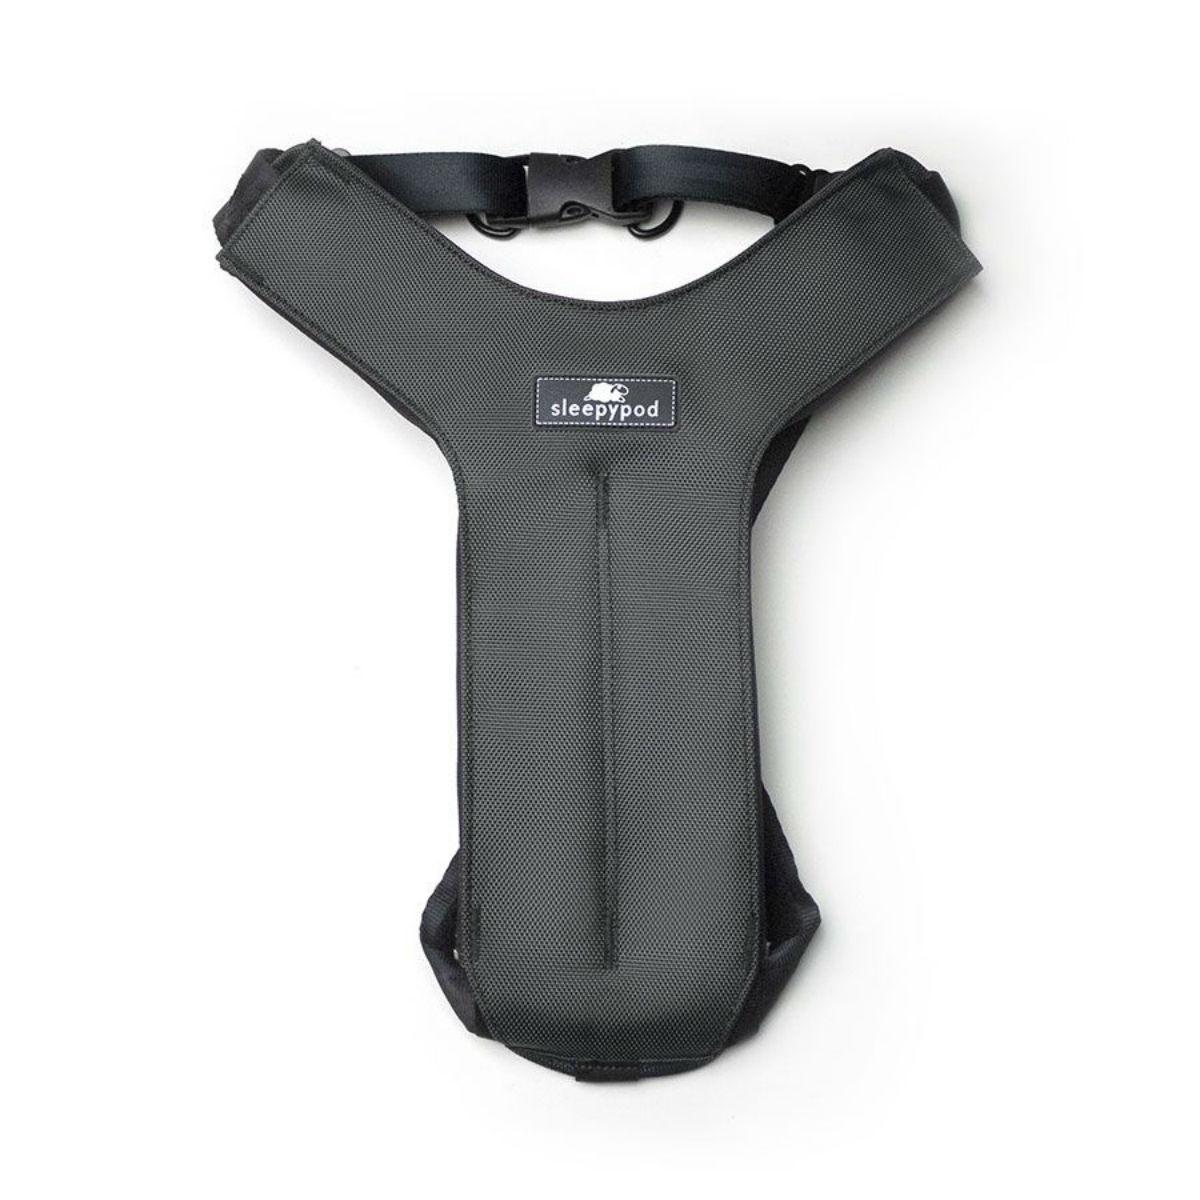 Clickit Sport Dog Harness by Sleepypod - Charcoal